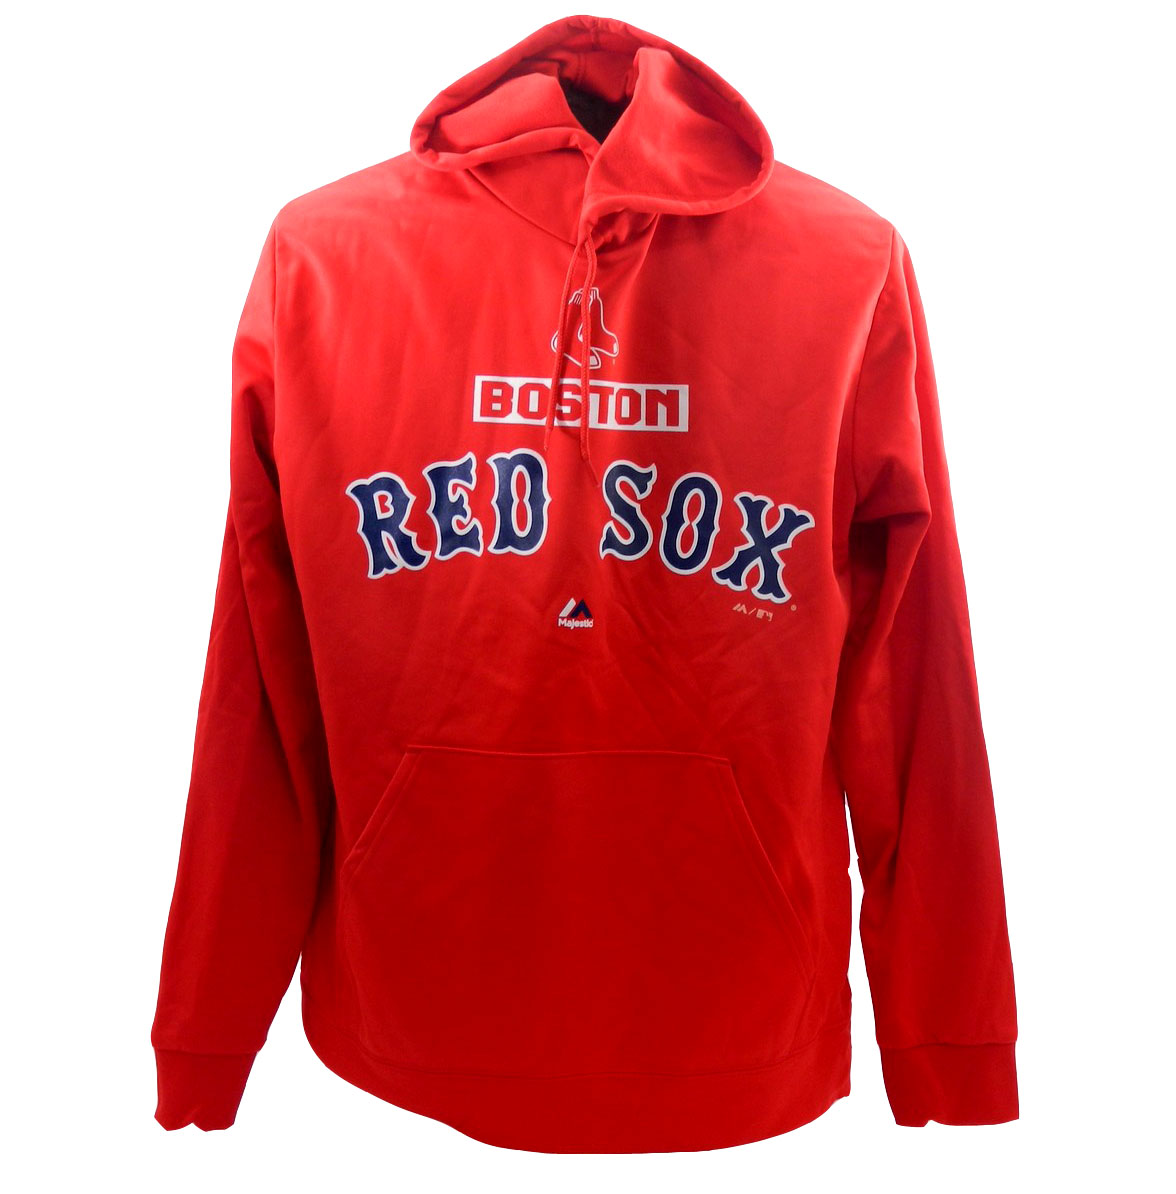 promo code 7e926 a0ffa Majestic Men's Boston Red Sox Pullover Hoodie Red Sweatshirt ...